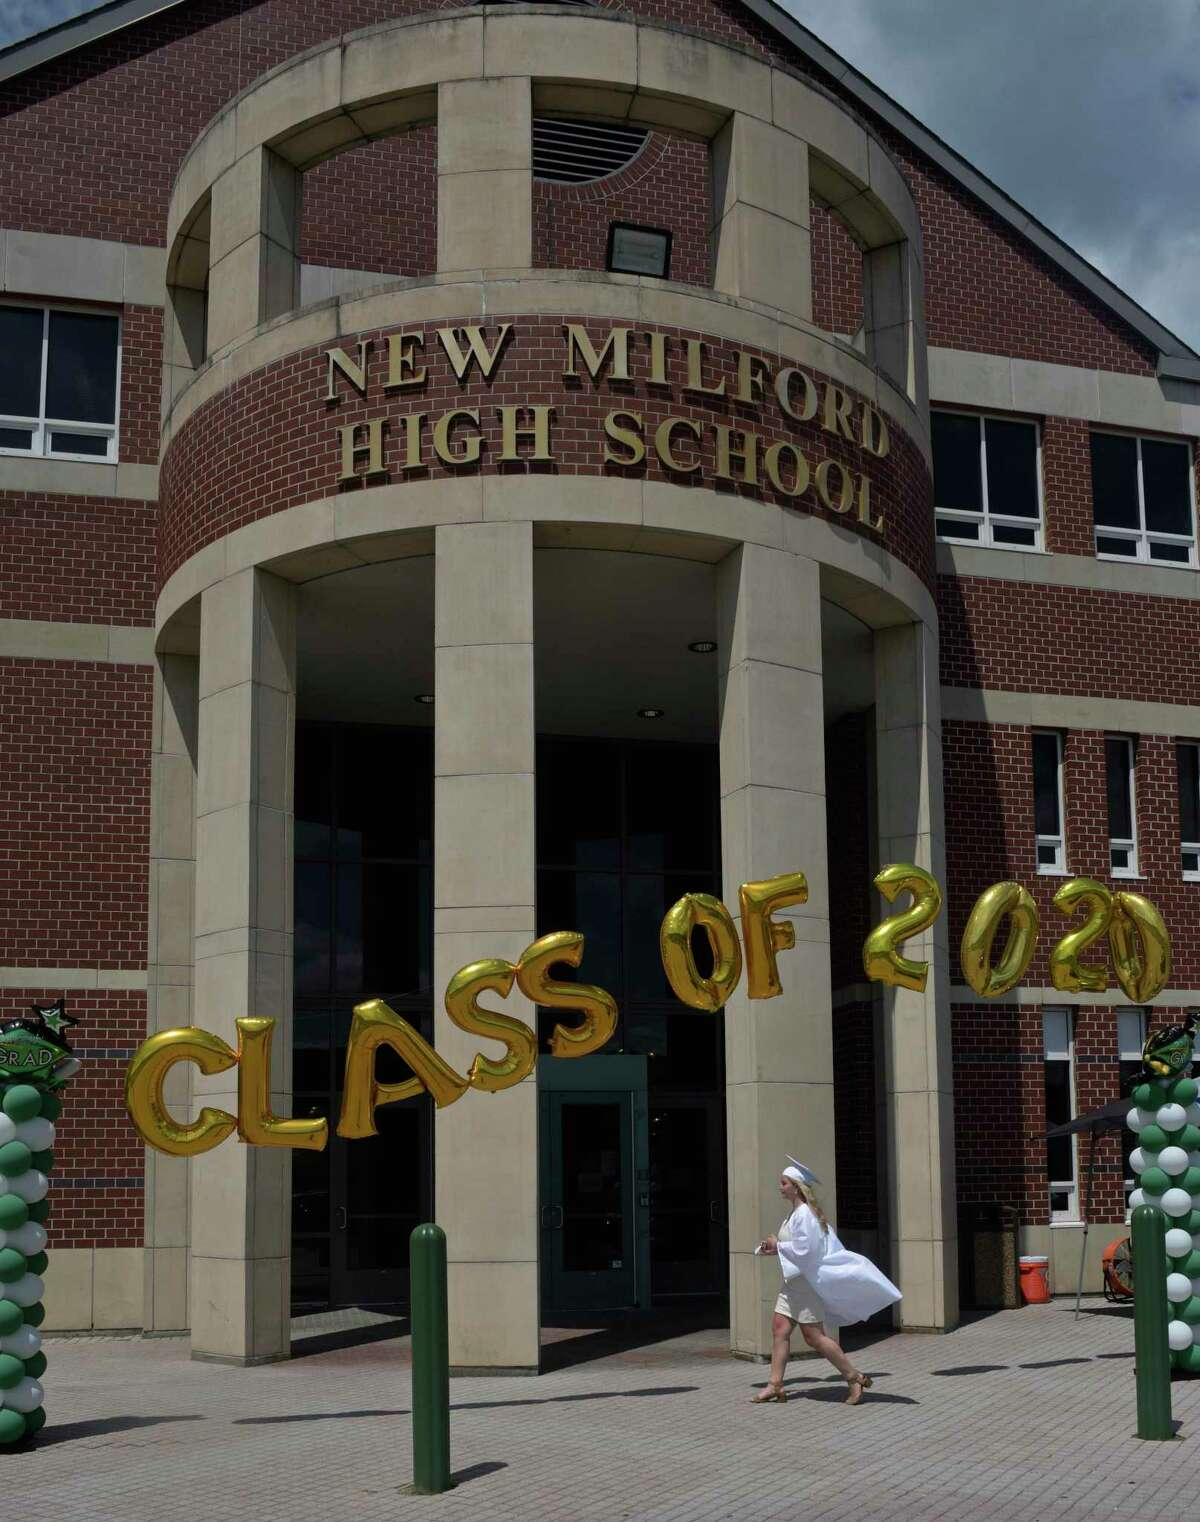 2020 New Milford High School graduates paraded to the high school from Sarah Noble Intermediate School and walked the sidewalk to receive their diplomas. Saturday, June 20, 2020, in New Milford, Conn.